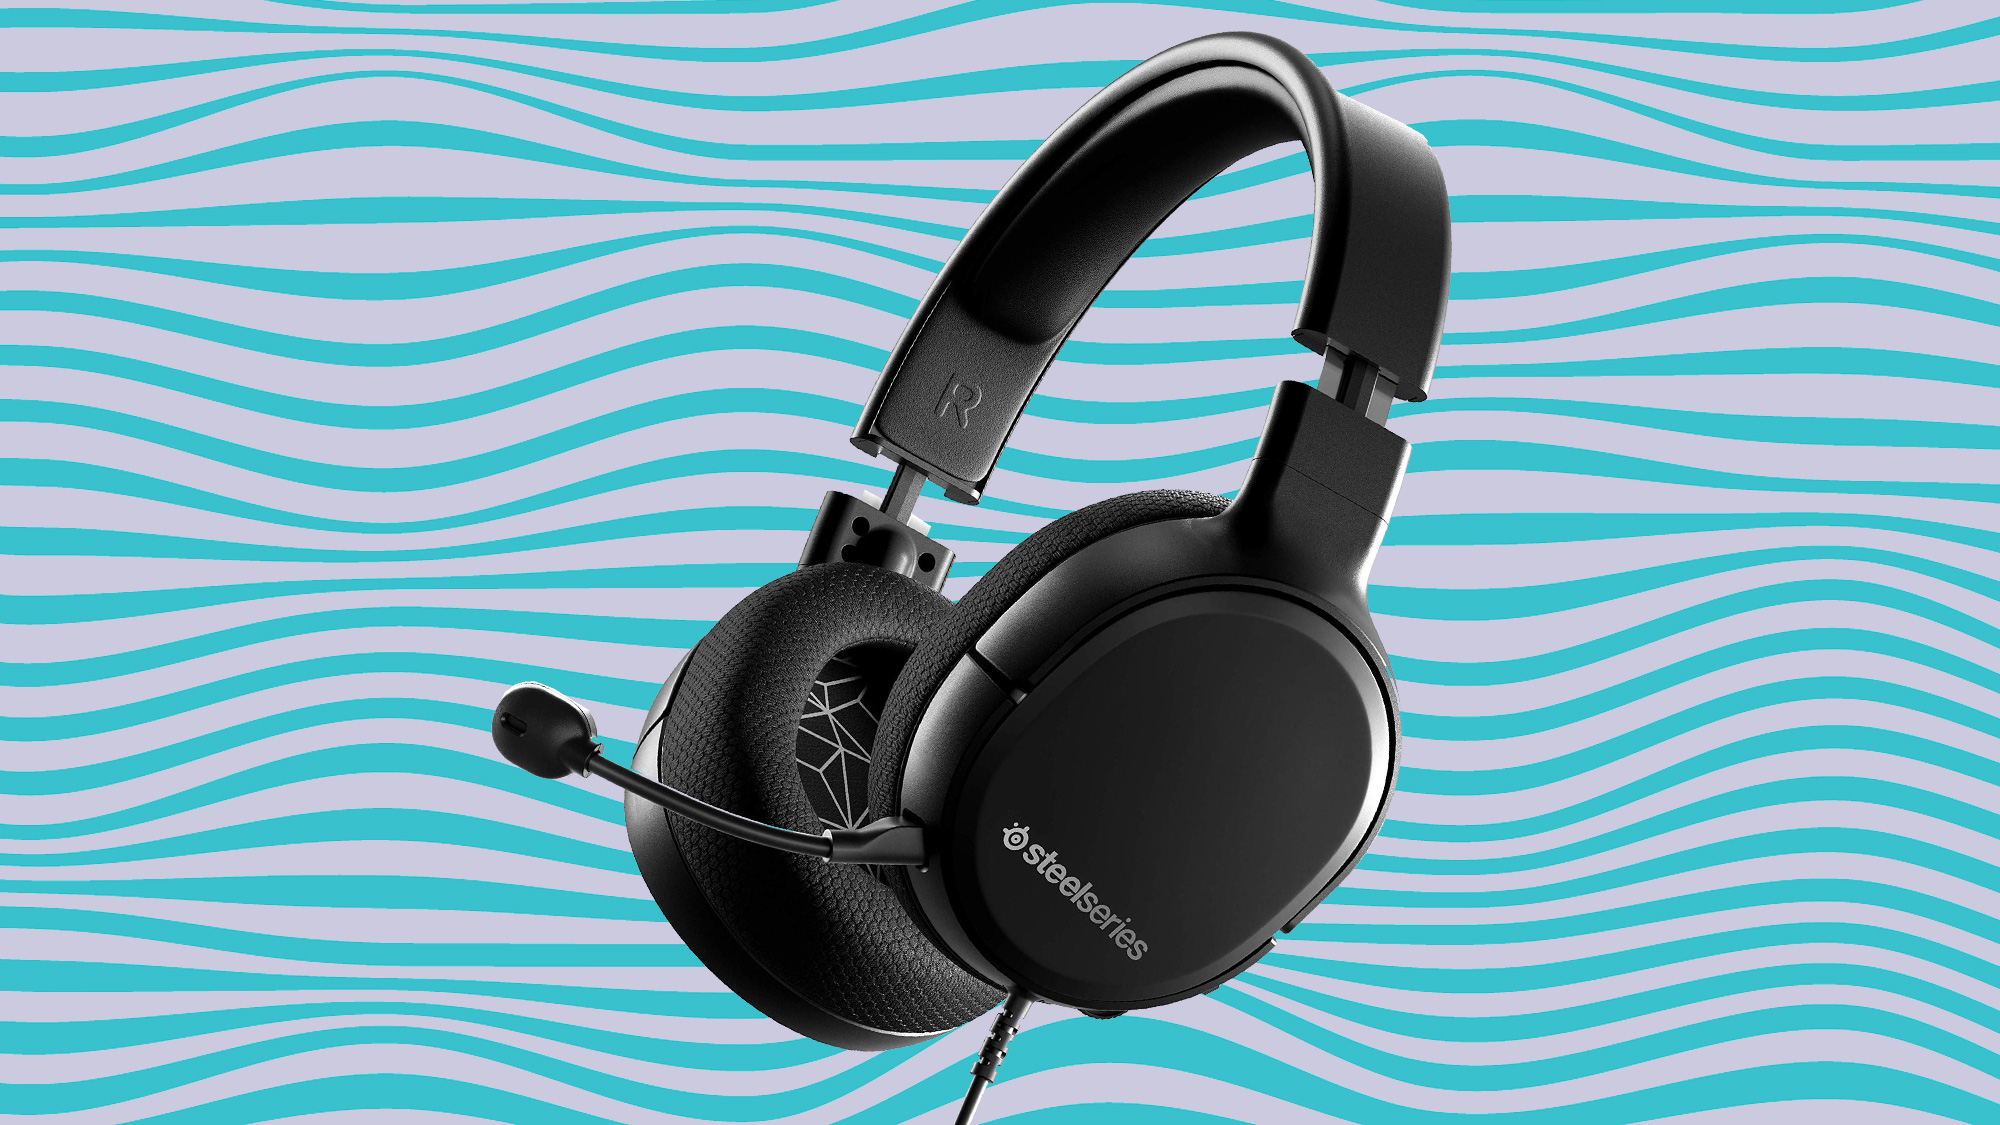 Best headsets for PS5: SteelSeries Arctis 1